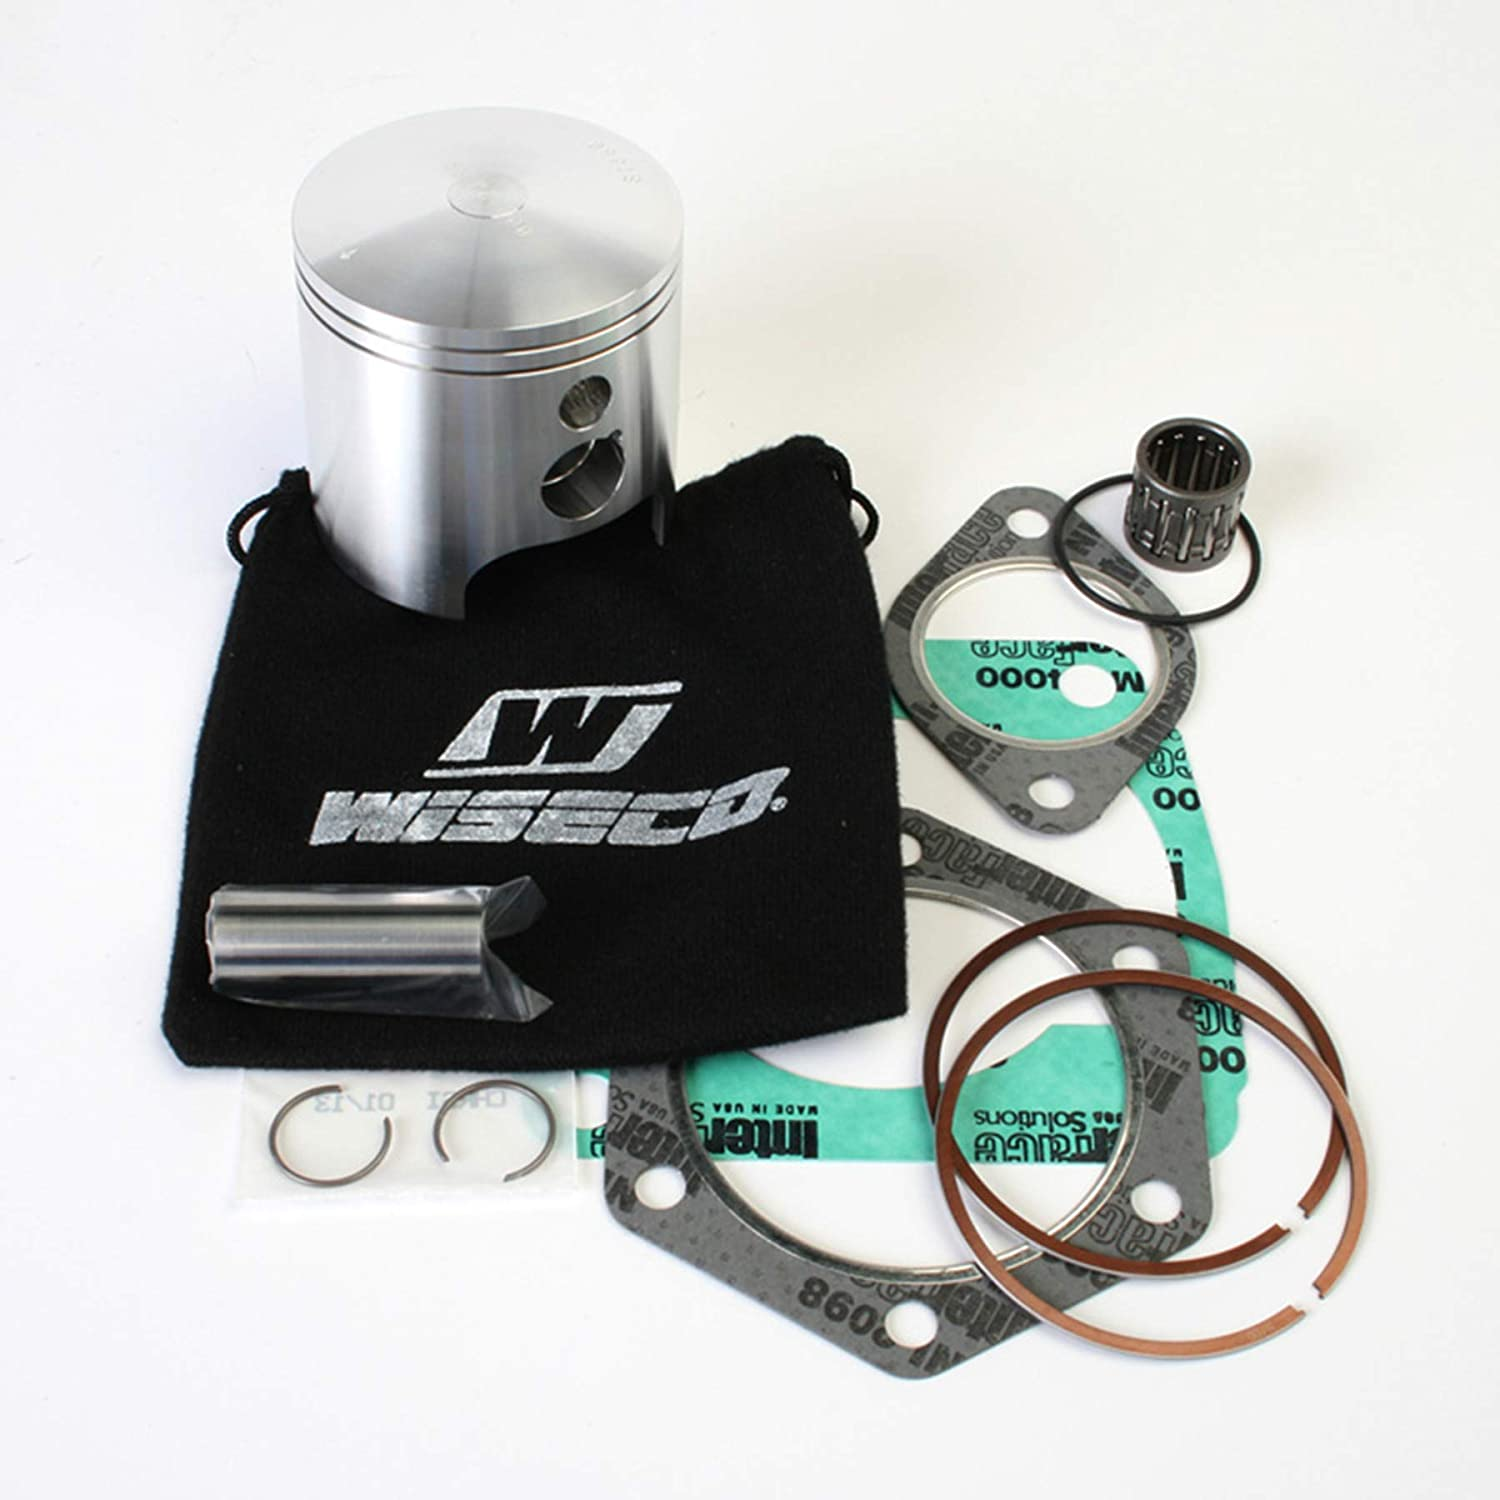 Top End Kit 1.00mm Oversize to 73.00mm For 2006 Polaris Trail Blazer 250 ATV